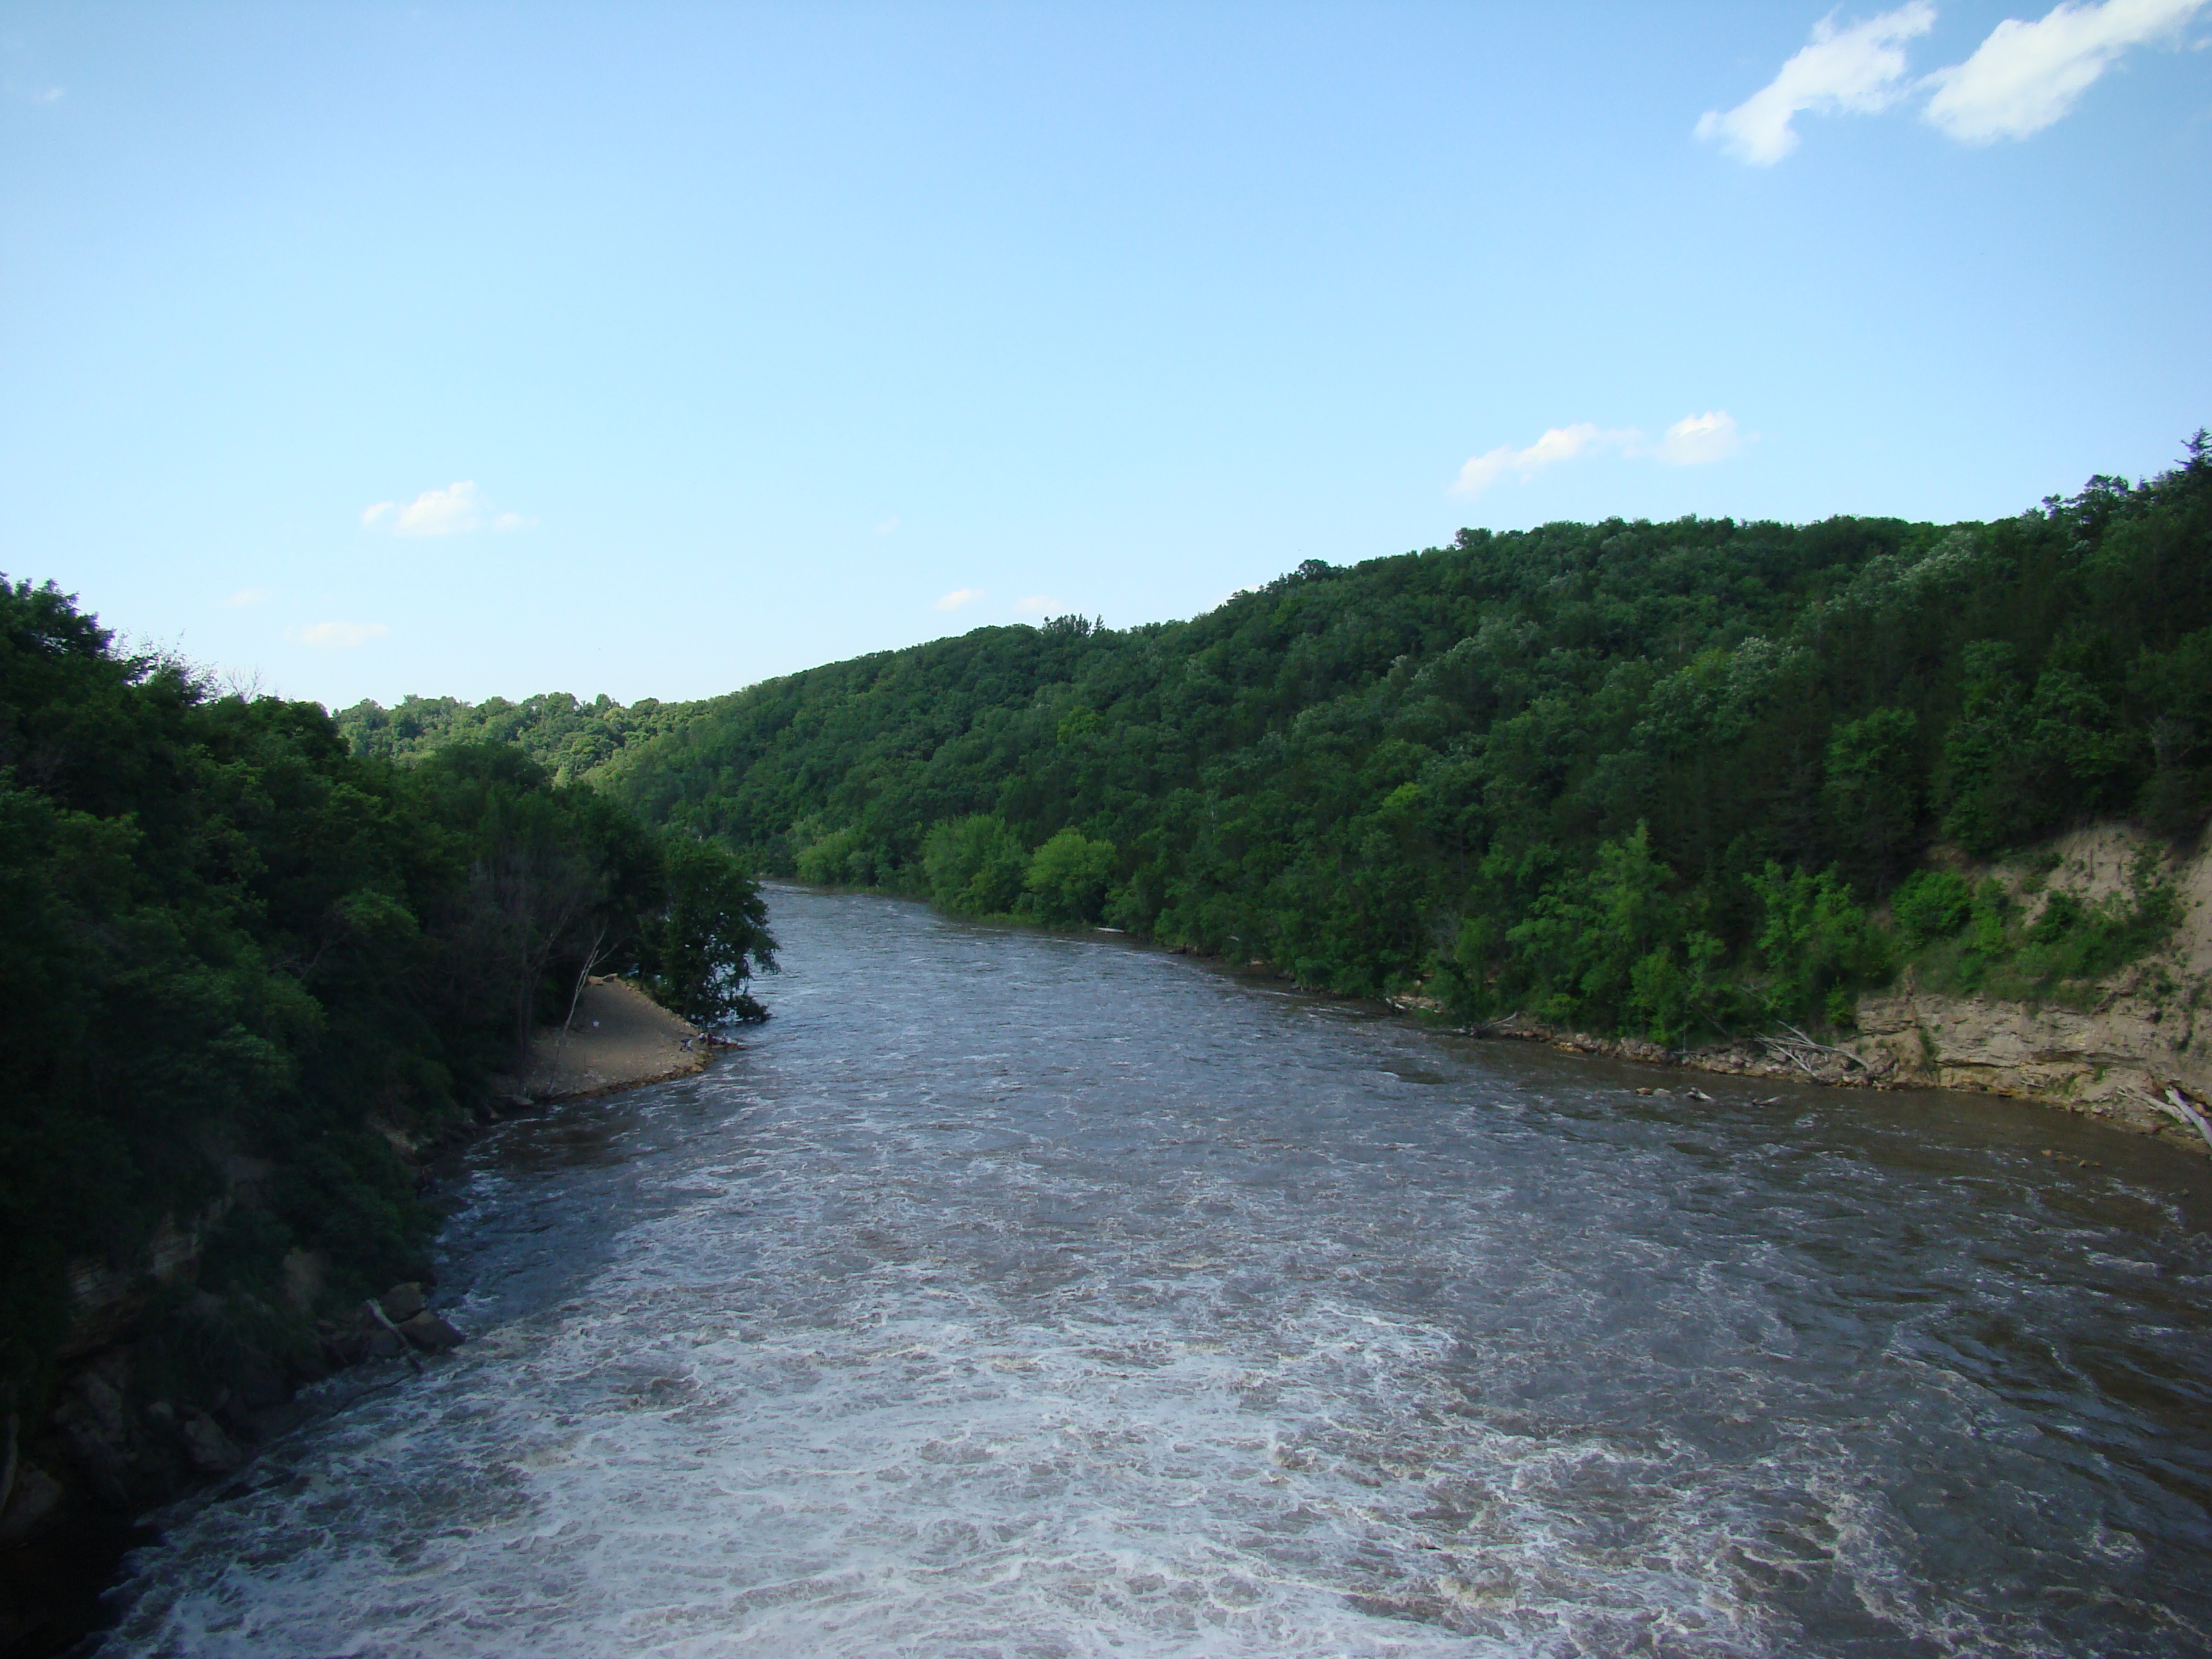 View of the Blue Earth River from on top of the Rapidan Dam.